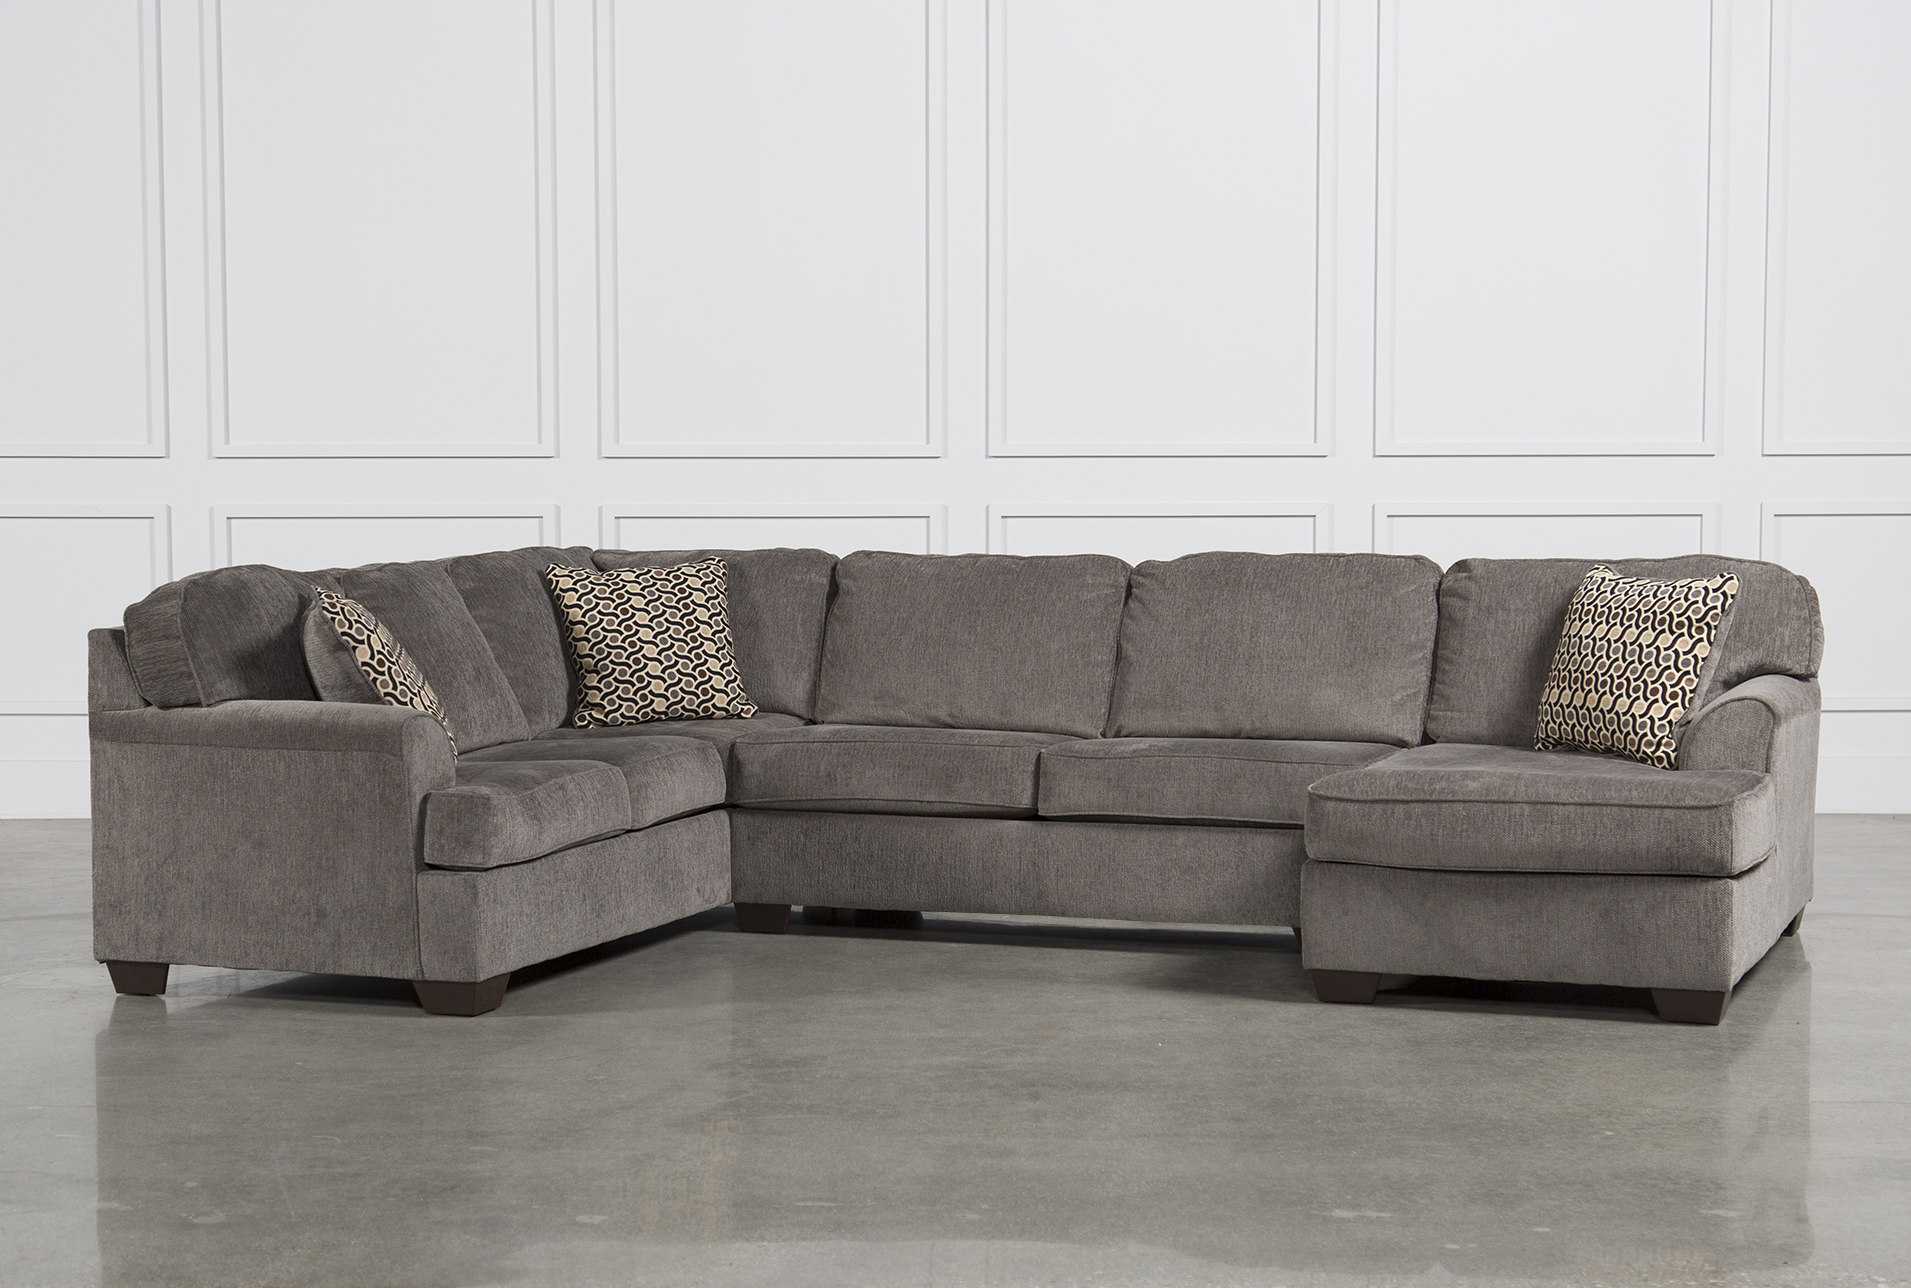 Loric Smoke 3 Piece Sectional W/Raf Chaise   360